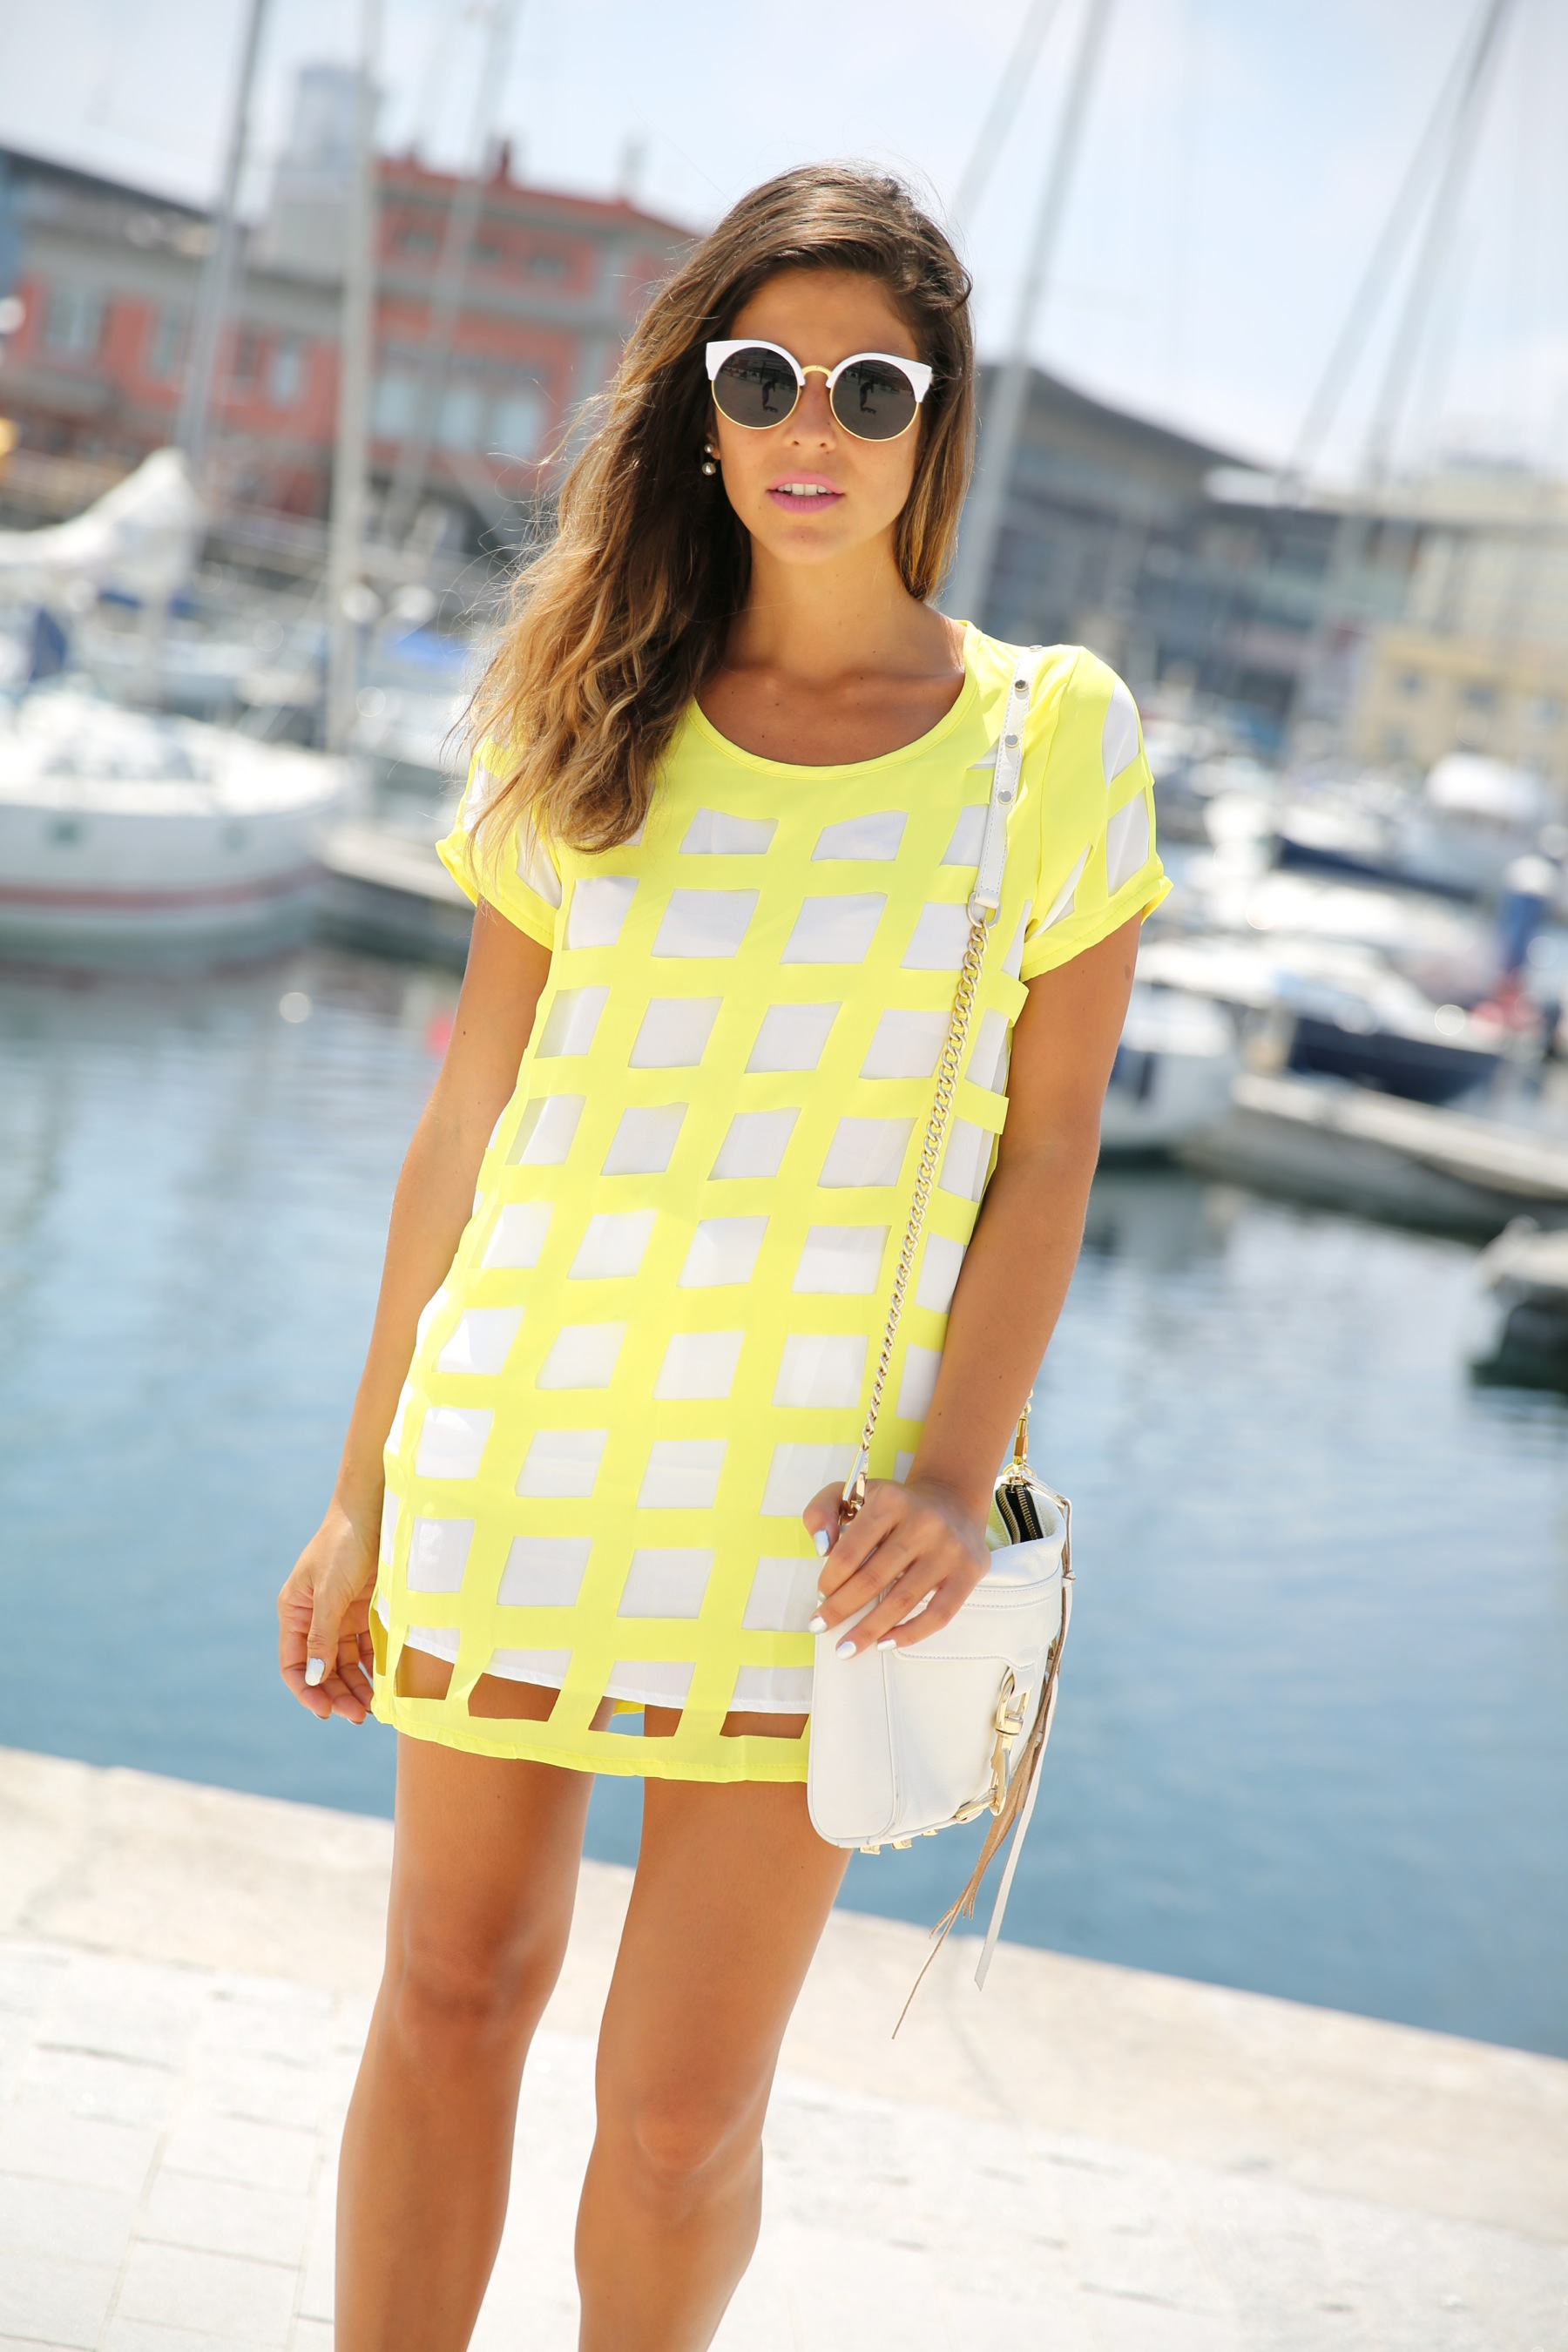 trendy_taste-look-outfit-street_style-ootd-blog-blogger-moda_españa-fashion_spain-coruña-galicia-sandalias_plataforma-platform_sandals-rebecca_minkoff-yellow-amarillo-vestido-dress-plaid-cuadros-5